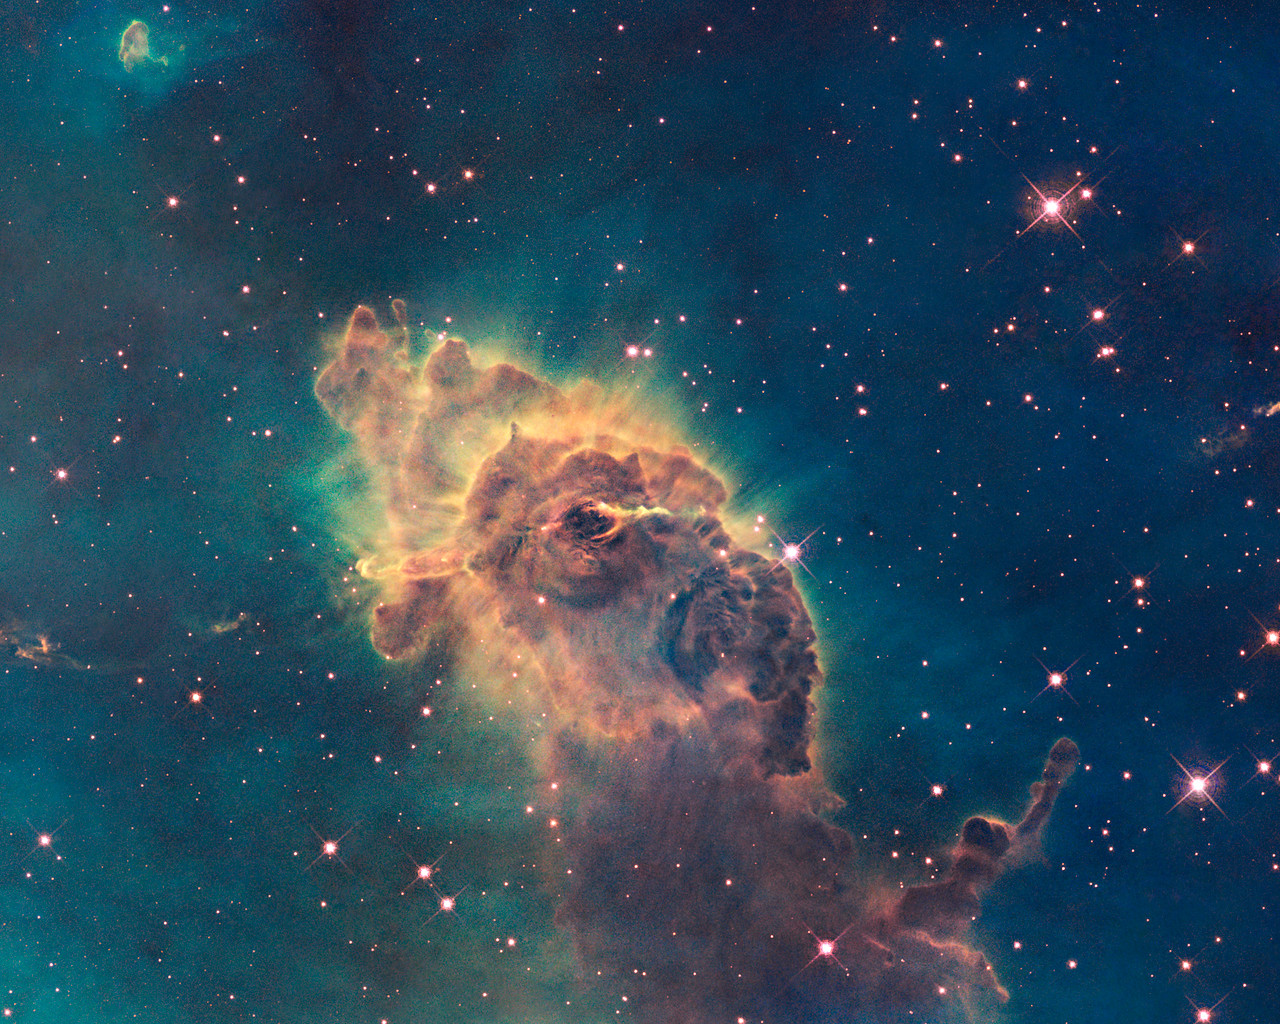 hubble space telescope star 2 - photo #10